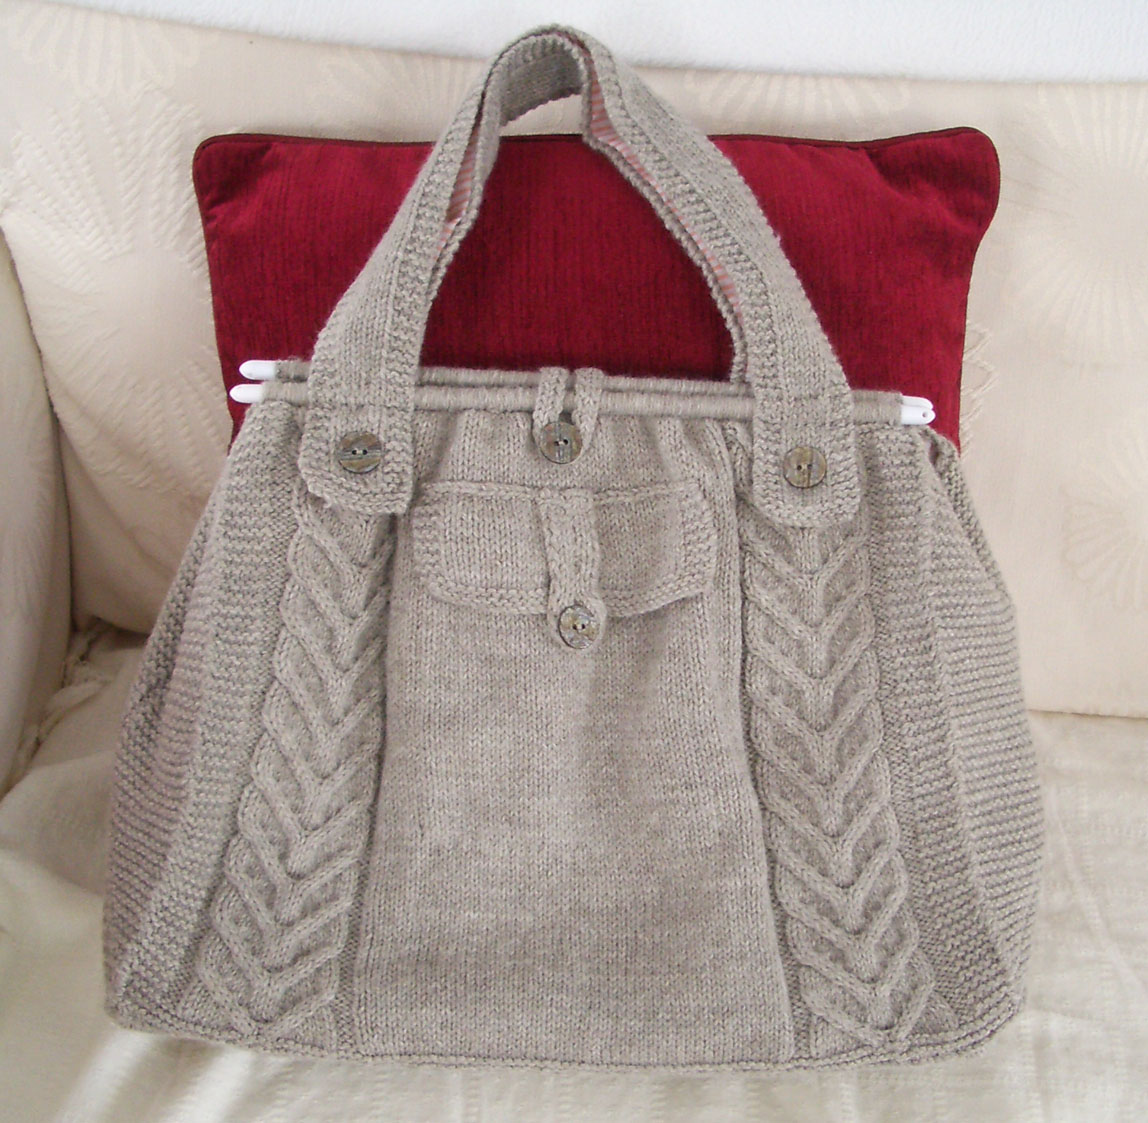 Knitted Purse Pattern : Knitted Creations: Cable Tote